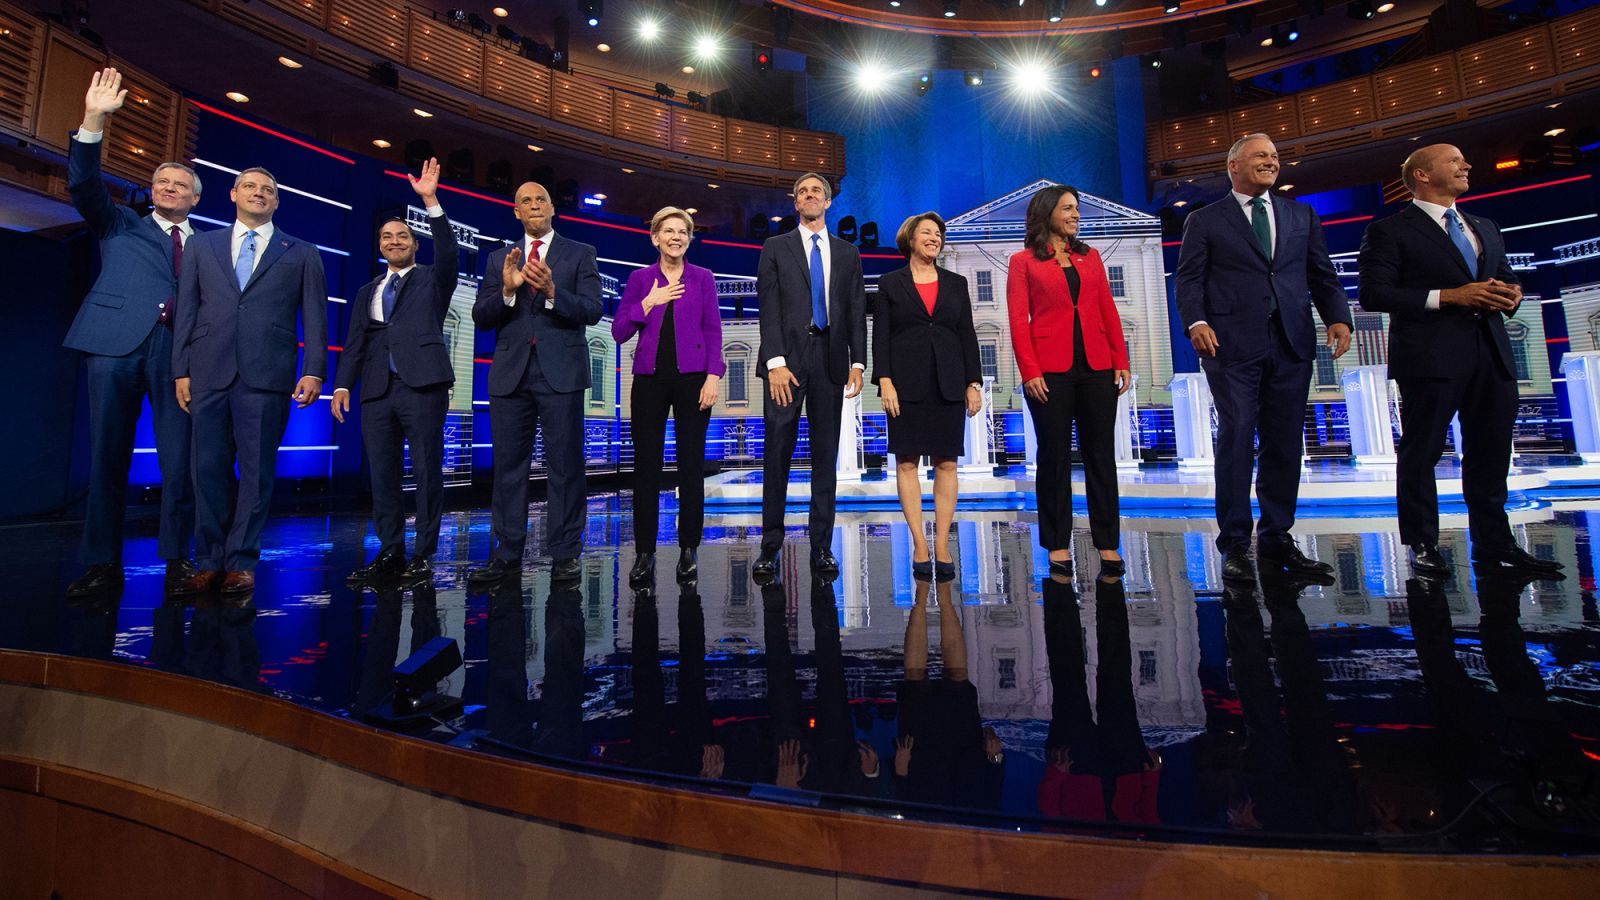 In pictures: The first Democratic debates